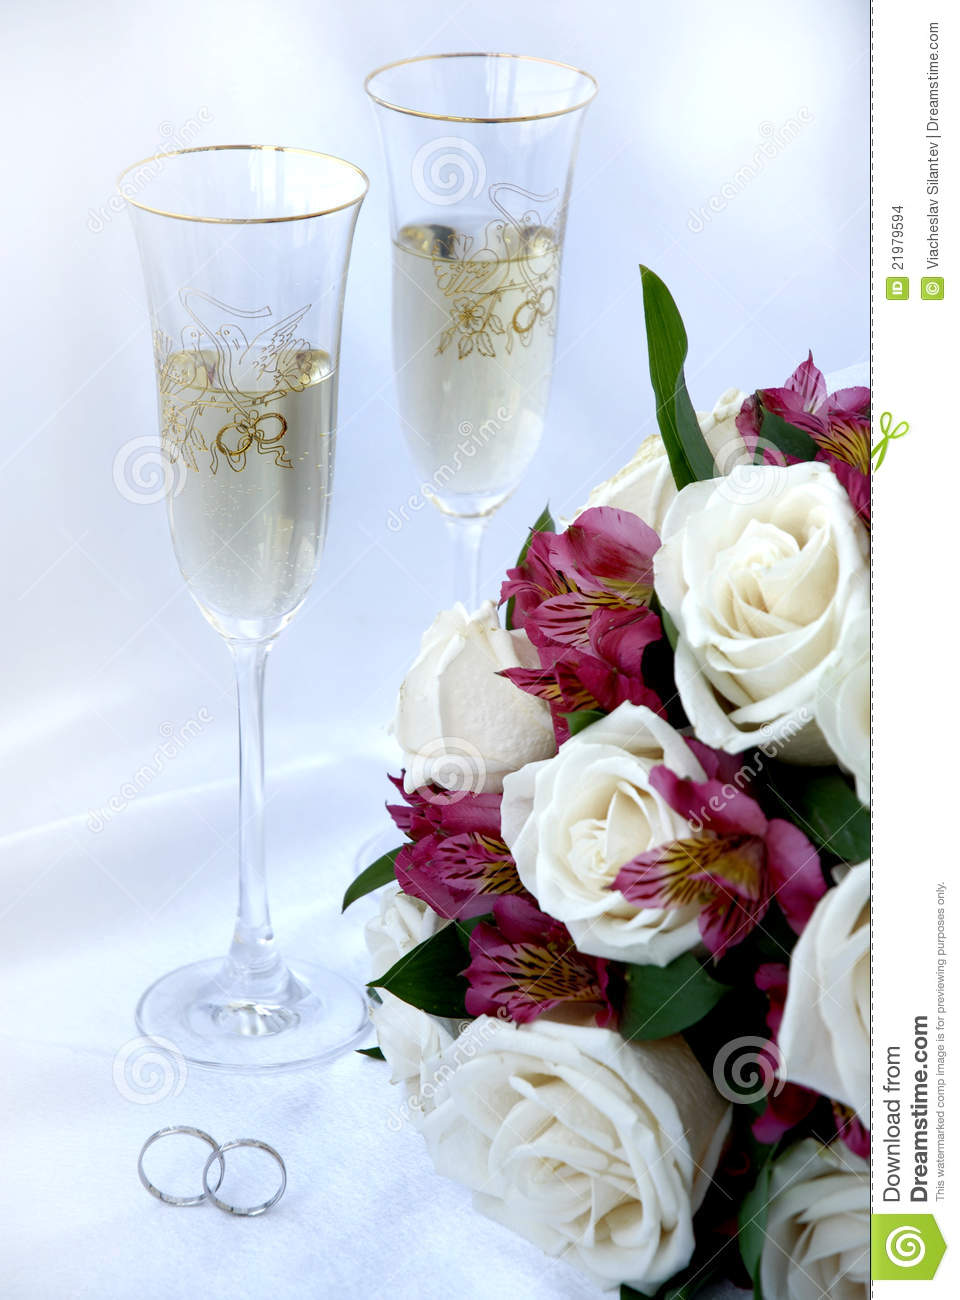 Wedding Rings Champagne And Flowers Stock Photo Image